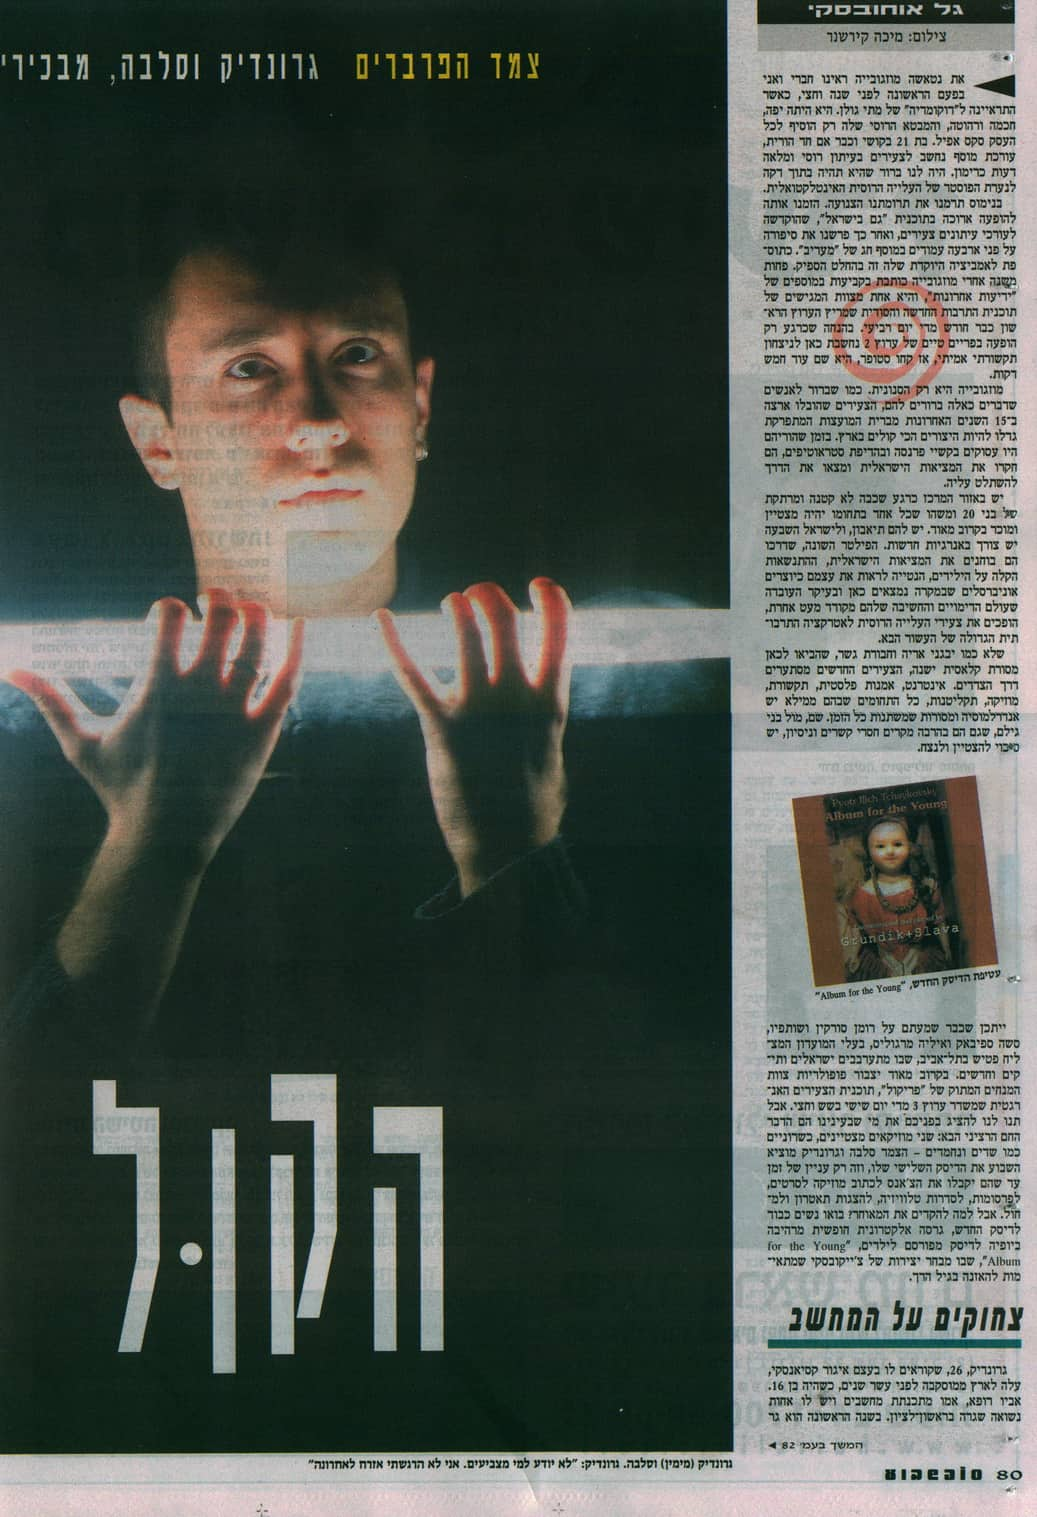 19 01 01 part1 - Cool Ha-Rusi, Maariv, interview with Grundik+Slava, 19.01.2001